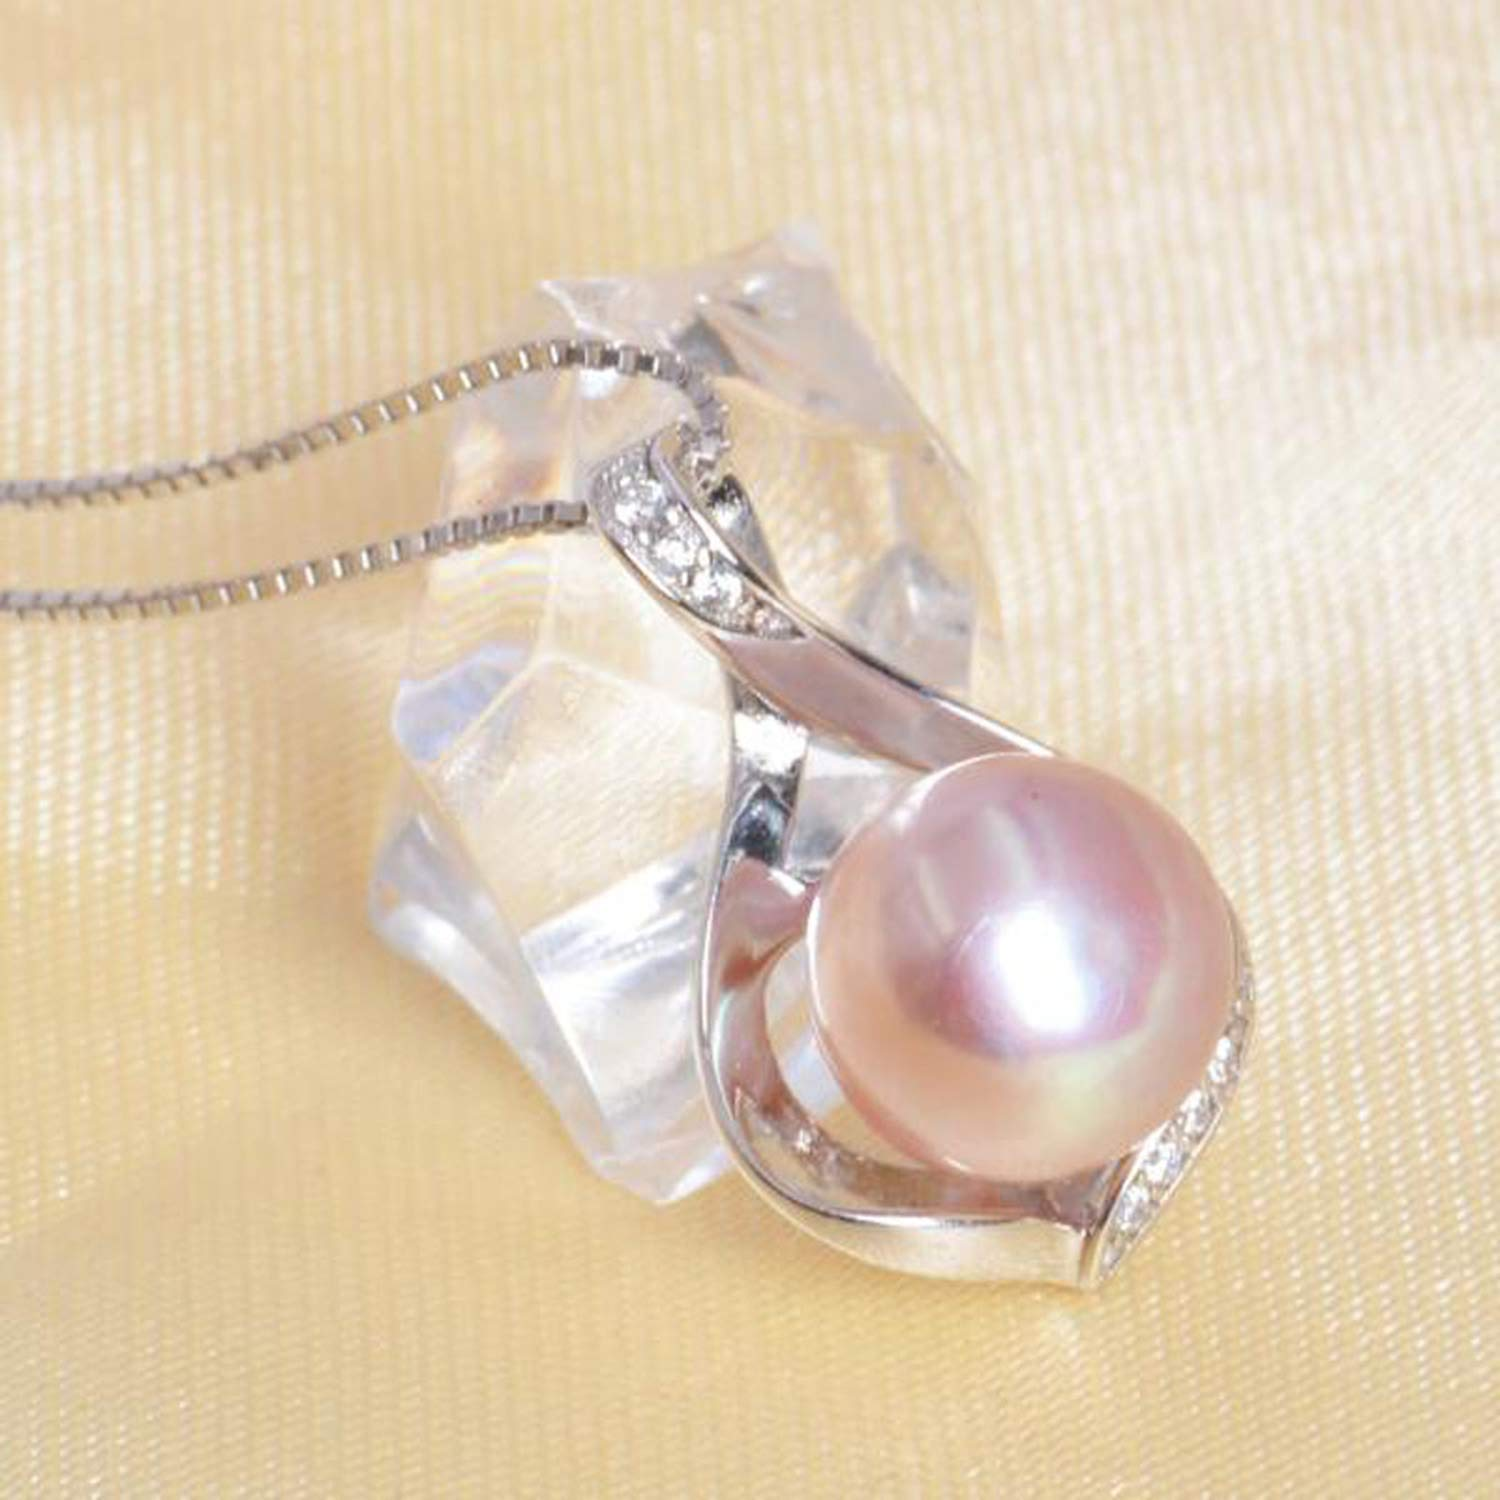 SVAT6D Real Natural Freshwater Pearls Necklace /& Pendants 925 Sterling Silver 9-10mm Pearl Jewelry,White,9-10mm,45cm